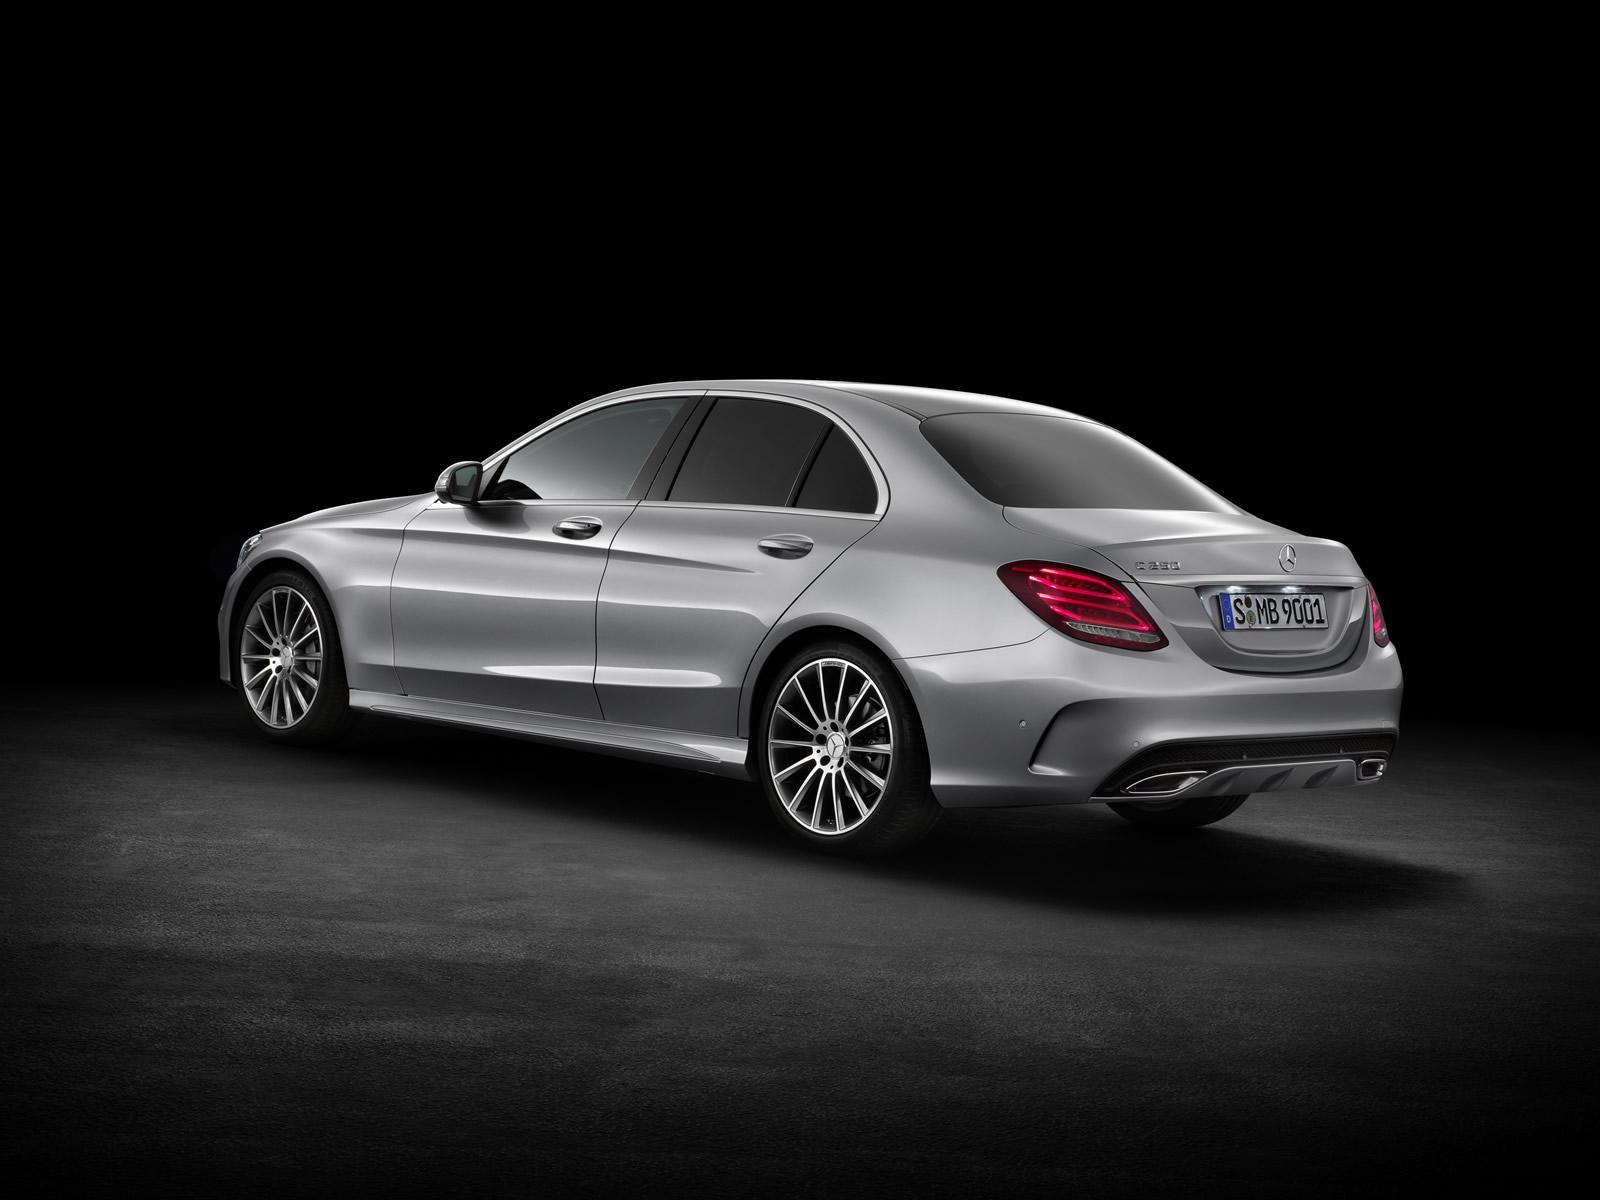 2014 mercedes benz c class amg rear. Cars Review. Best American Auto & Cars Review